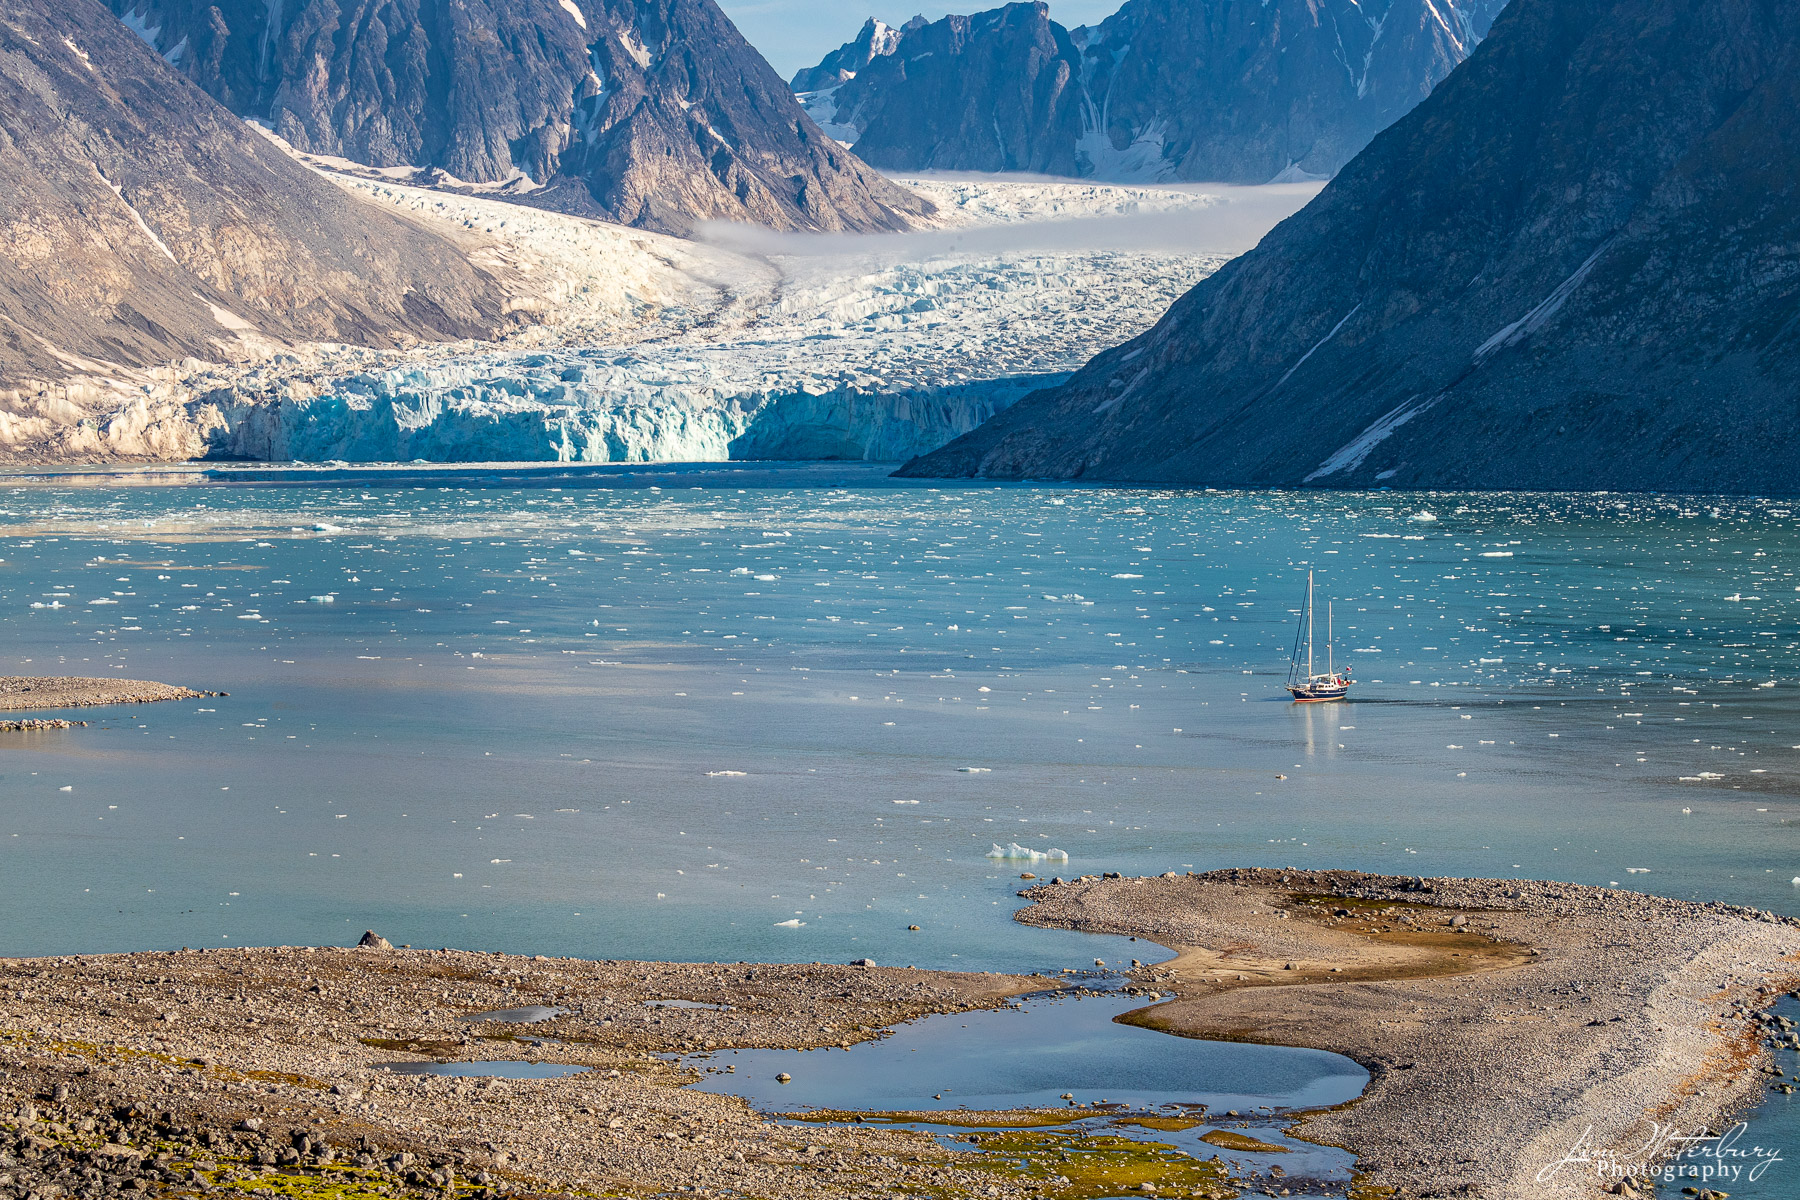 A sailboat cruises the high arctic n the waters of the Magdalene fjord, Nordvest-Spitsbergen National Park, Svalbard.